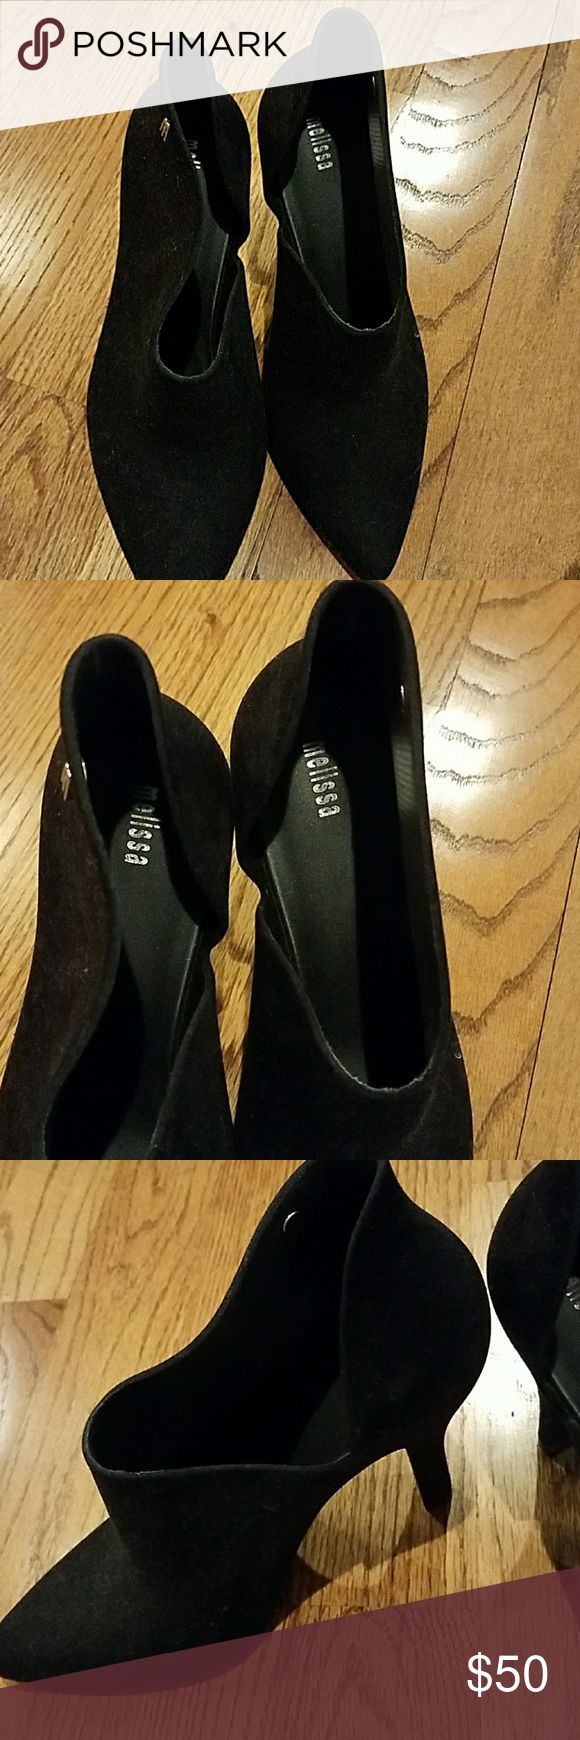 Melissa Black Heels Black velvet pumps.  Melissa brand made in Brazil.  Never worn.  They fit pretty snug but feel they will loosen up after being worn.  Melissa shoes are rubber and these are velvet on the outside. 4 inch heel. Melissa Shoes Heels